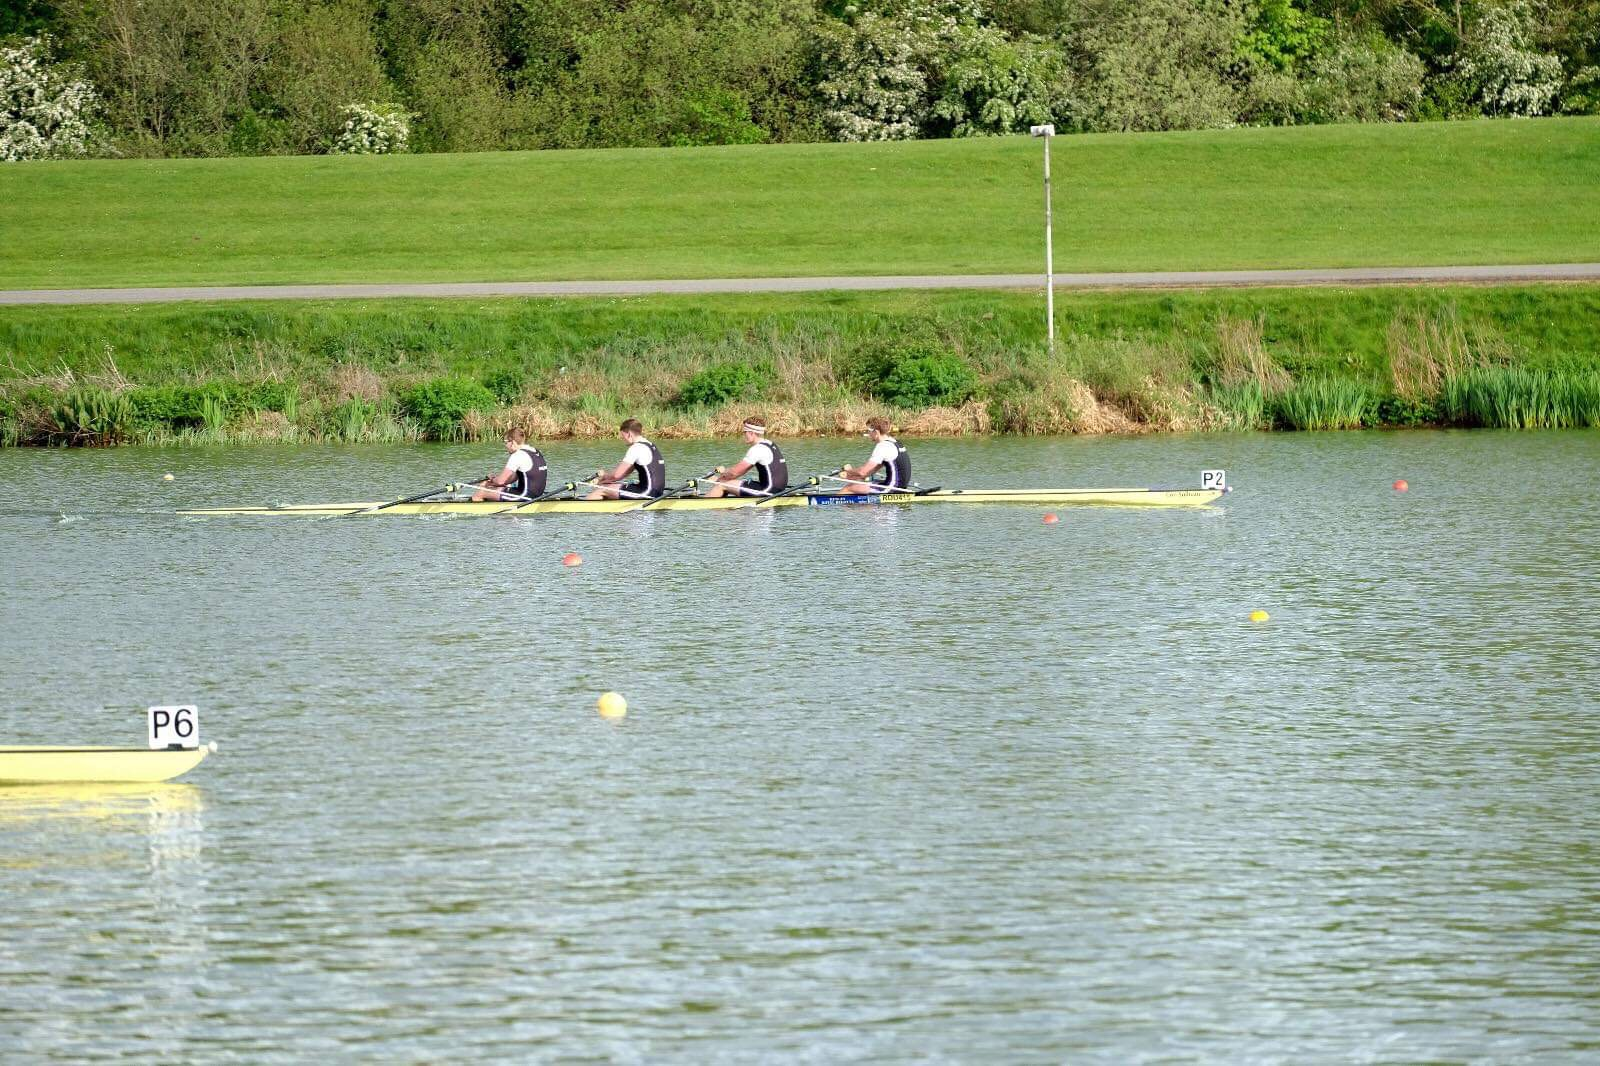 The Men's Intermediate A 4x: Alex, Dave, Joe and Rob picking up a bronze medal - Good job Boys.